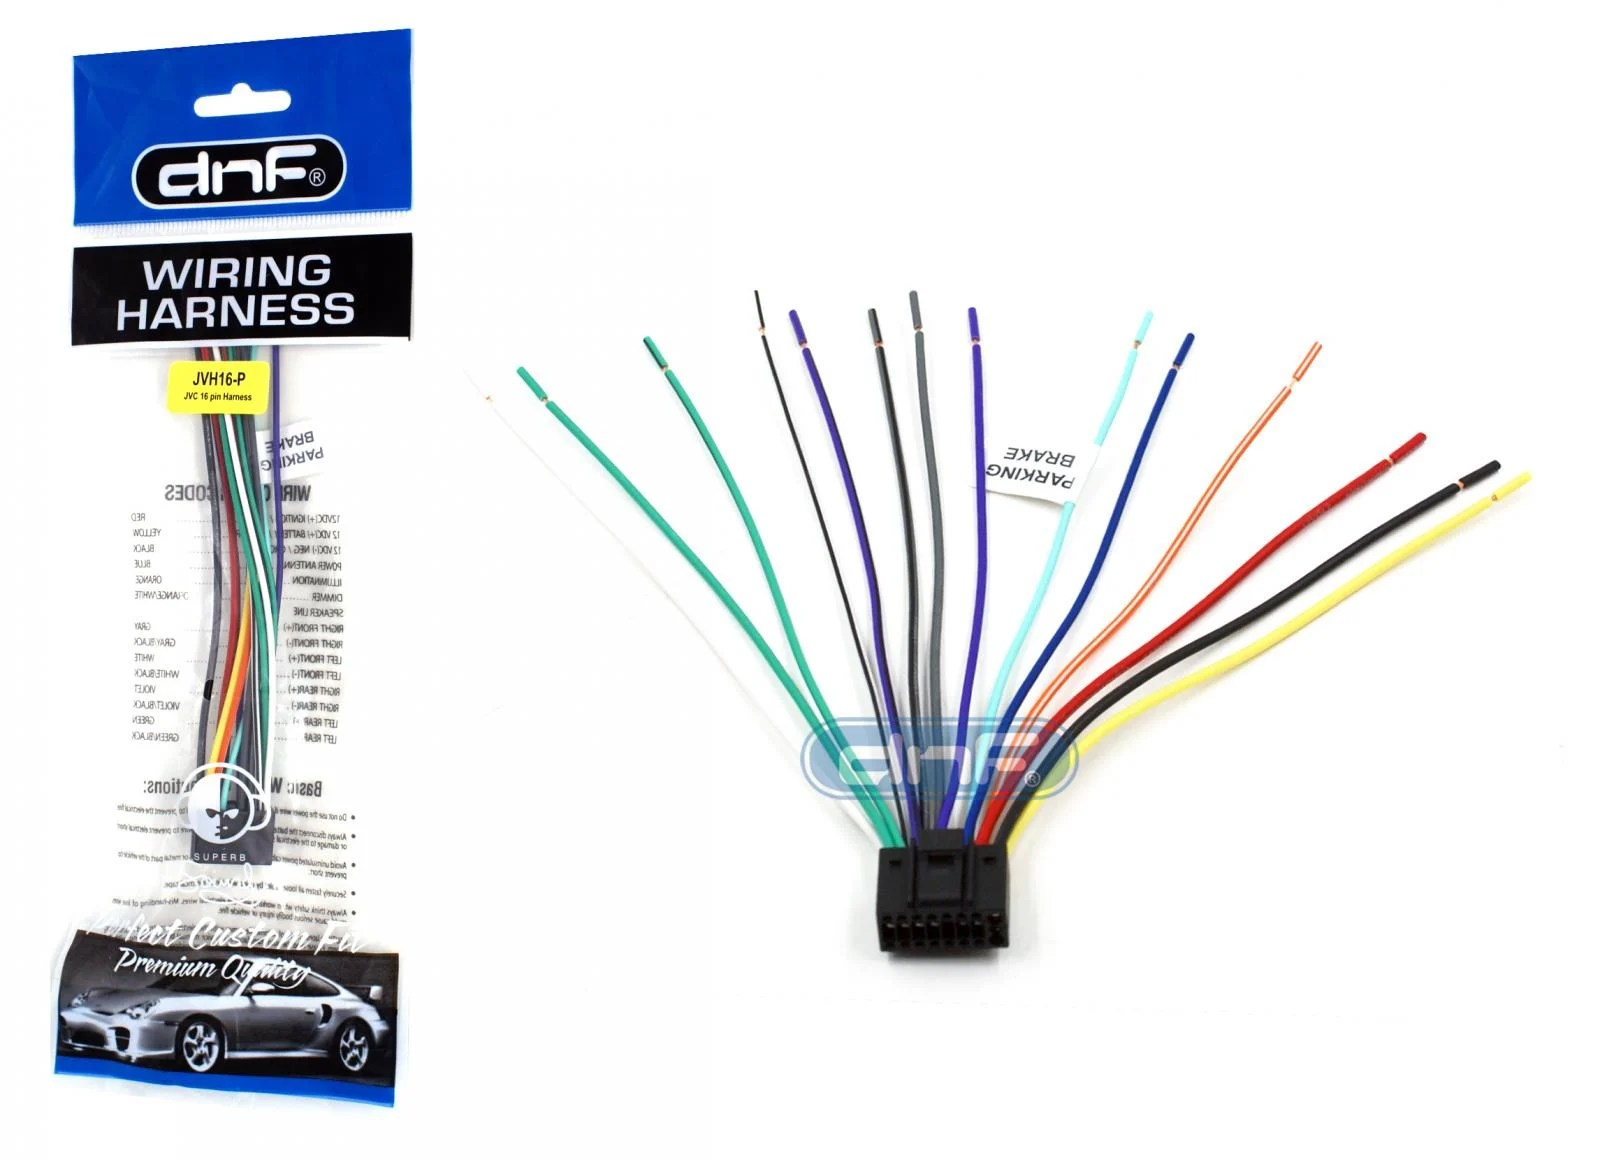 hight resolution of jvc kw nx7000 kwnx7000 kw avx710 kwavx710 copper wiring harness wire jvc kd r330 wiring harness diagram jvc kd wiring harness